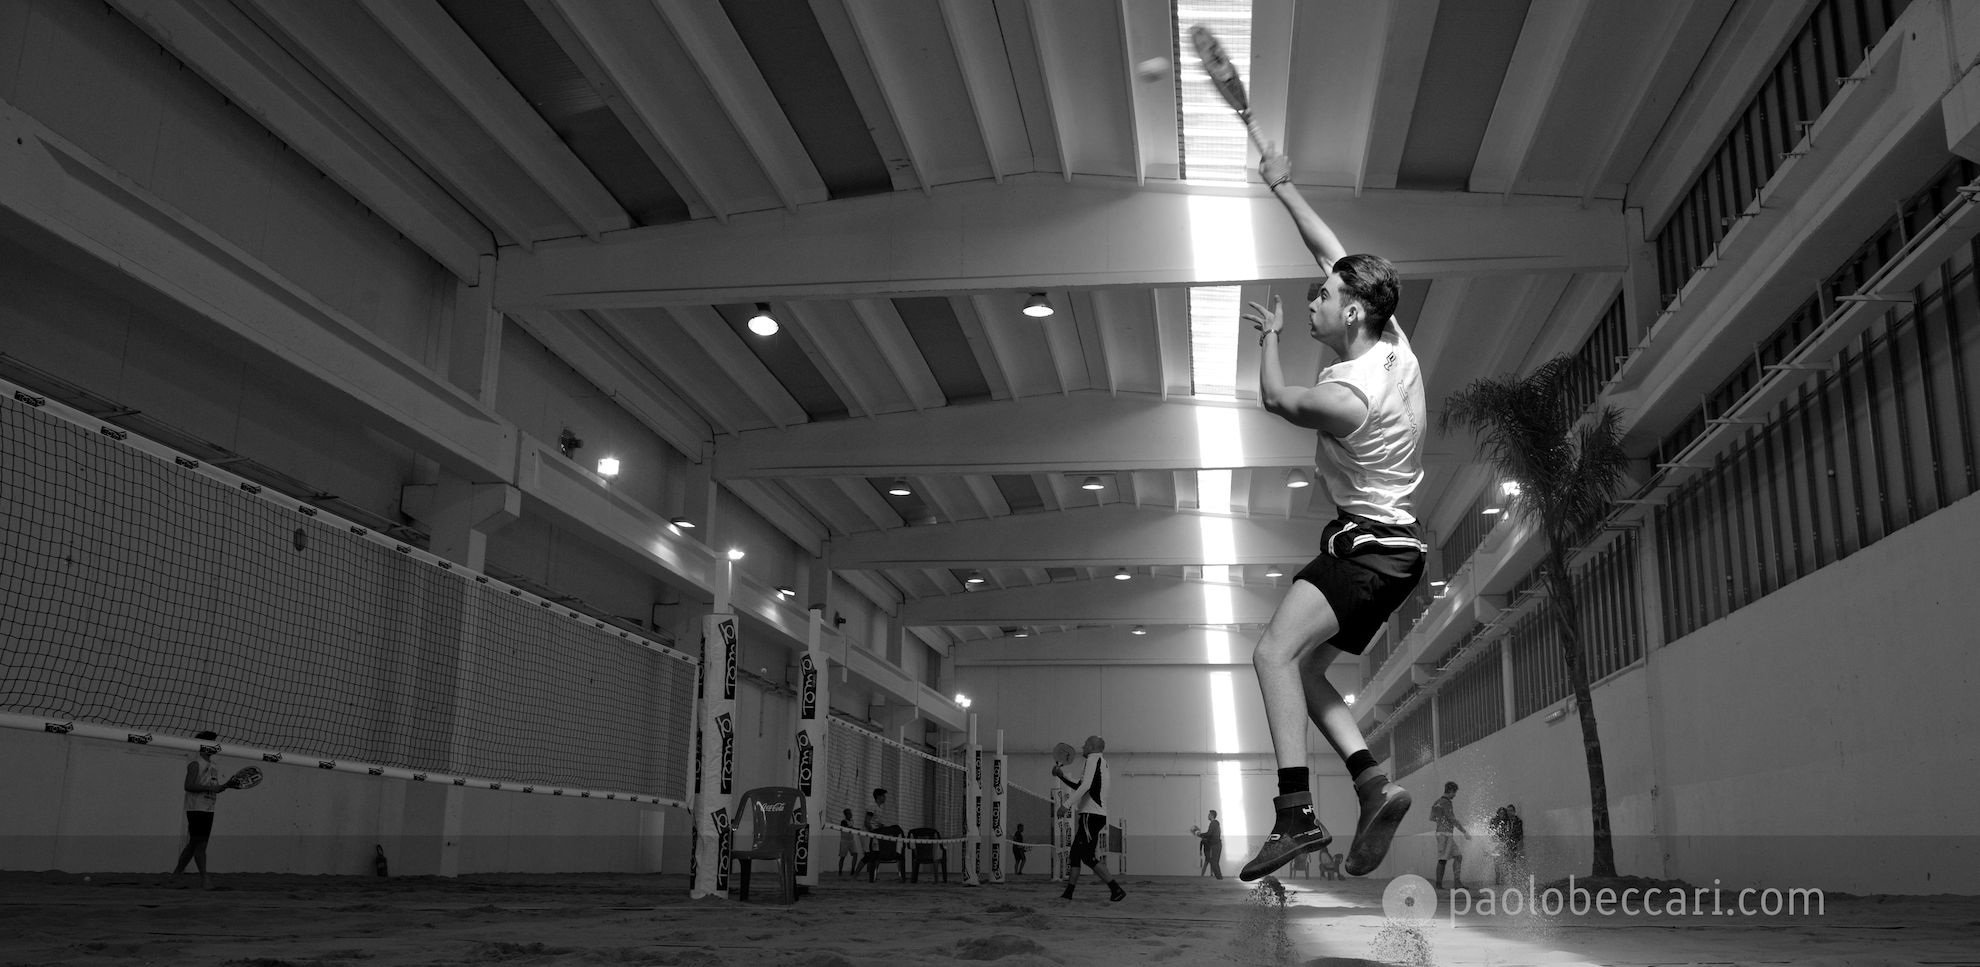 Fotografia di Beach Tennis: salto e smash in un campo indoor.